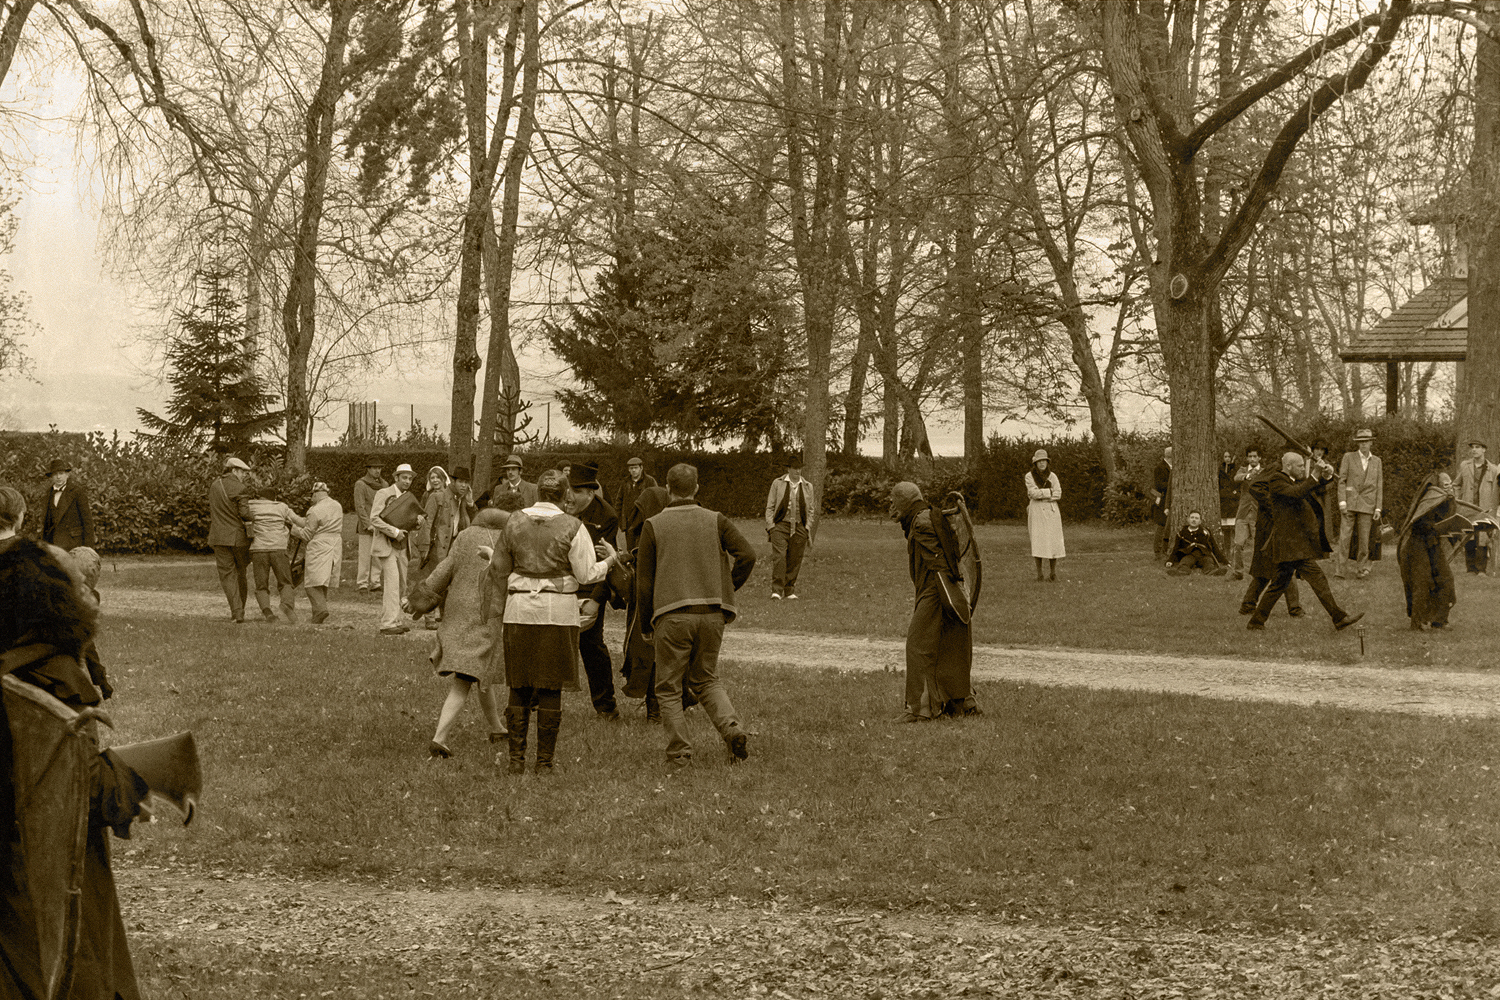 20140406-evenement-gn-arkham-0479-old-1500